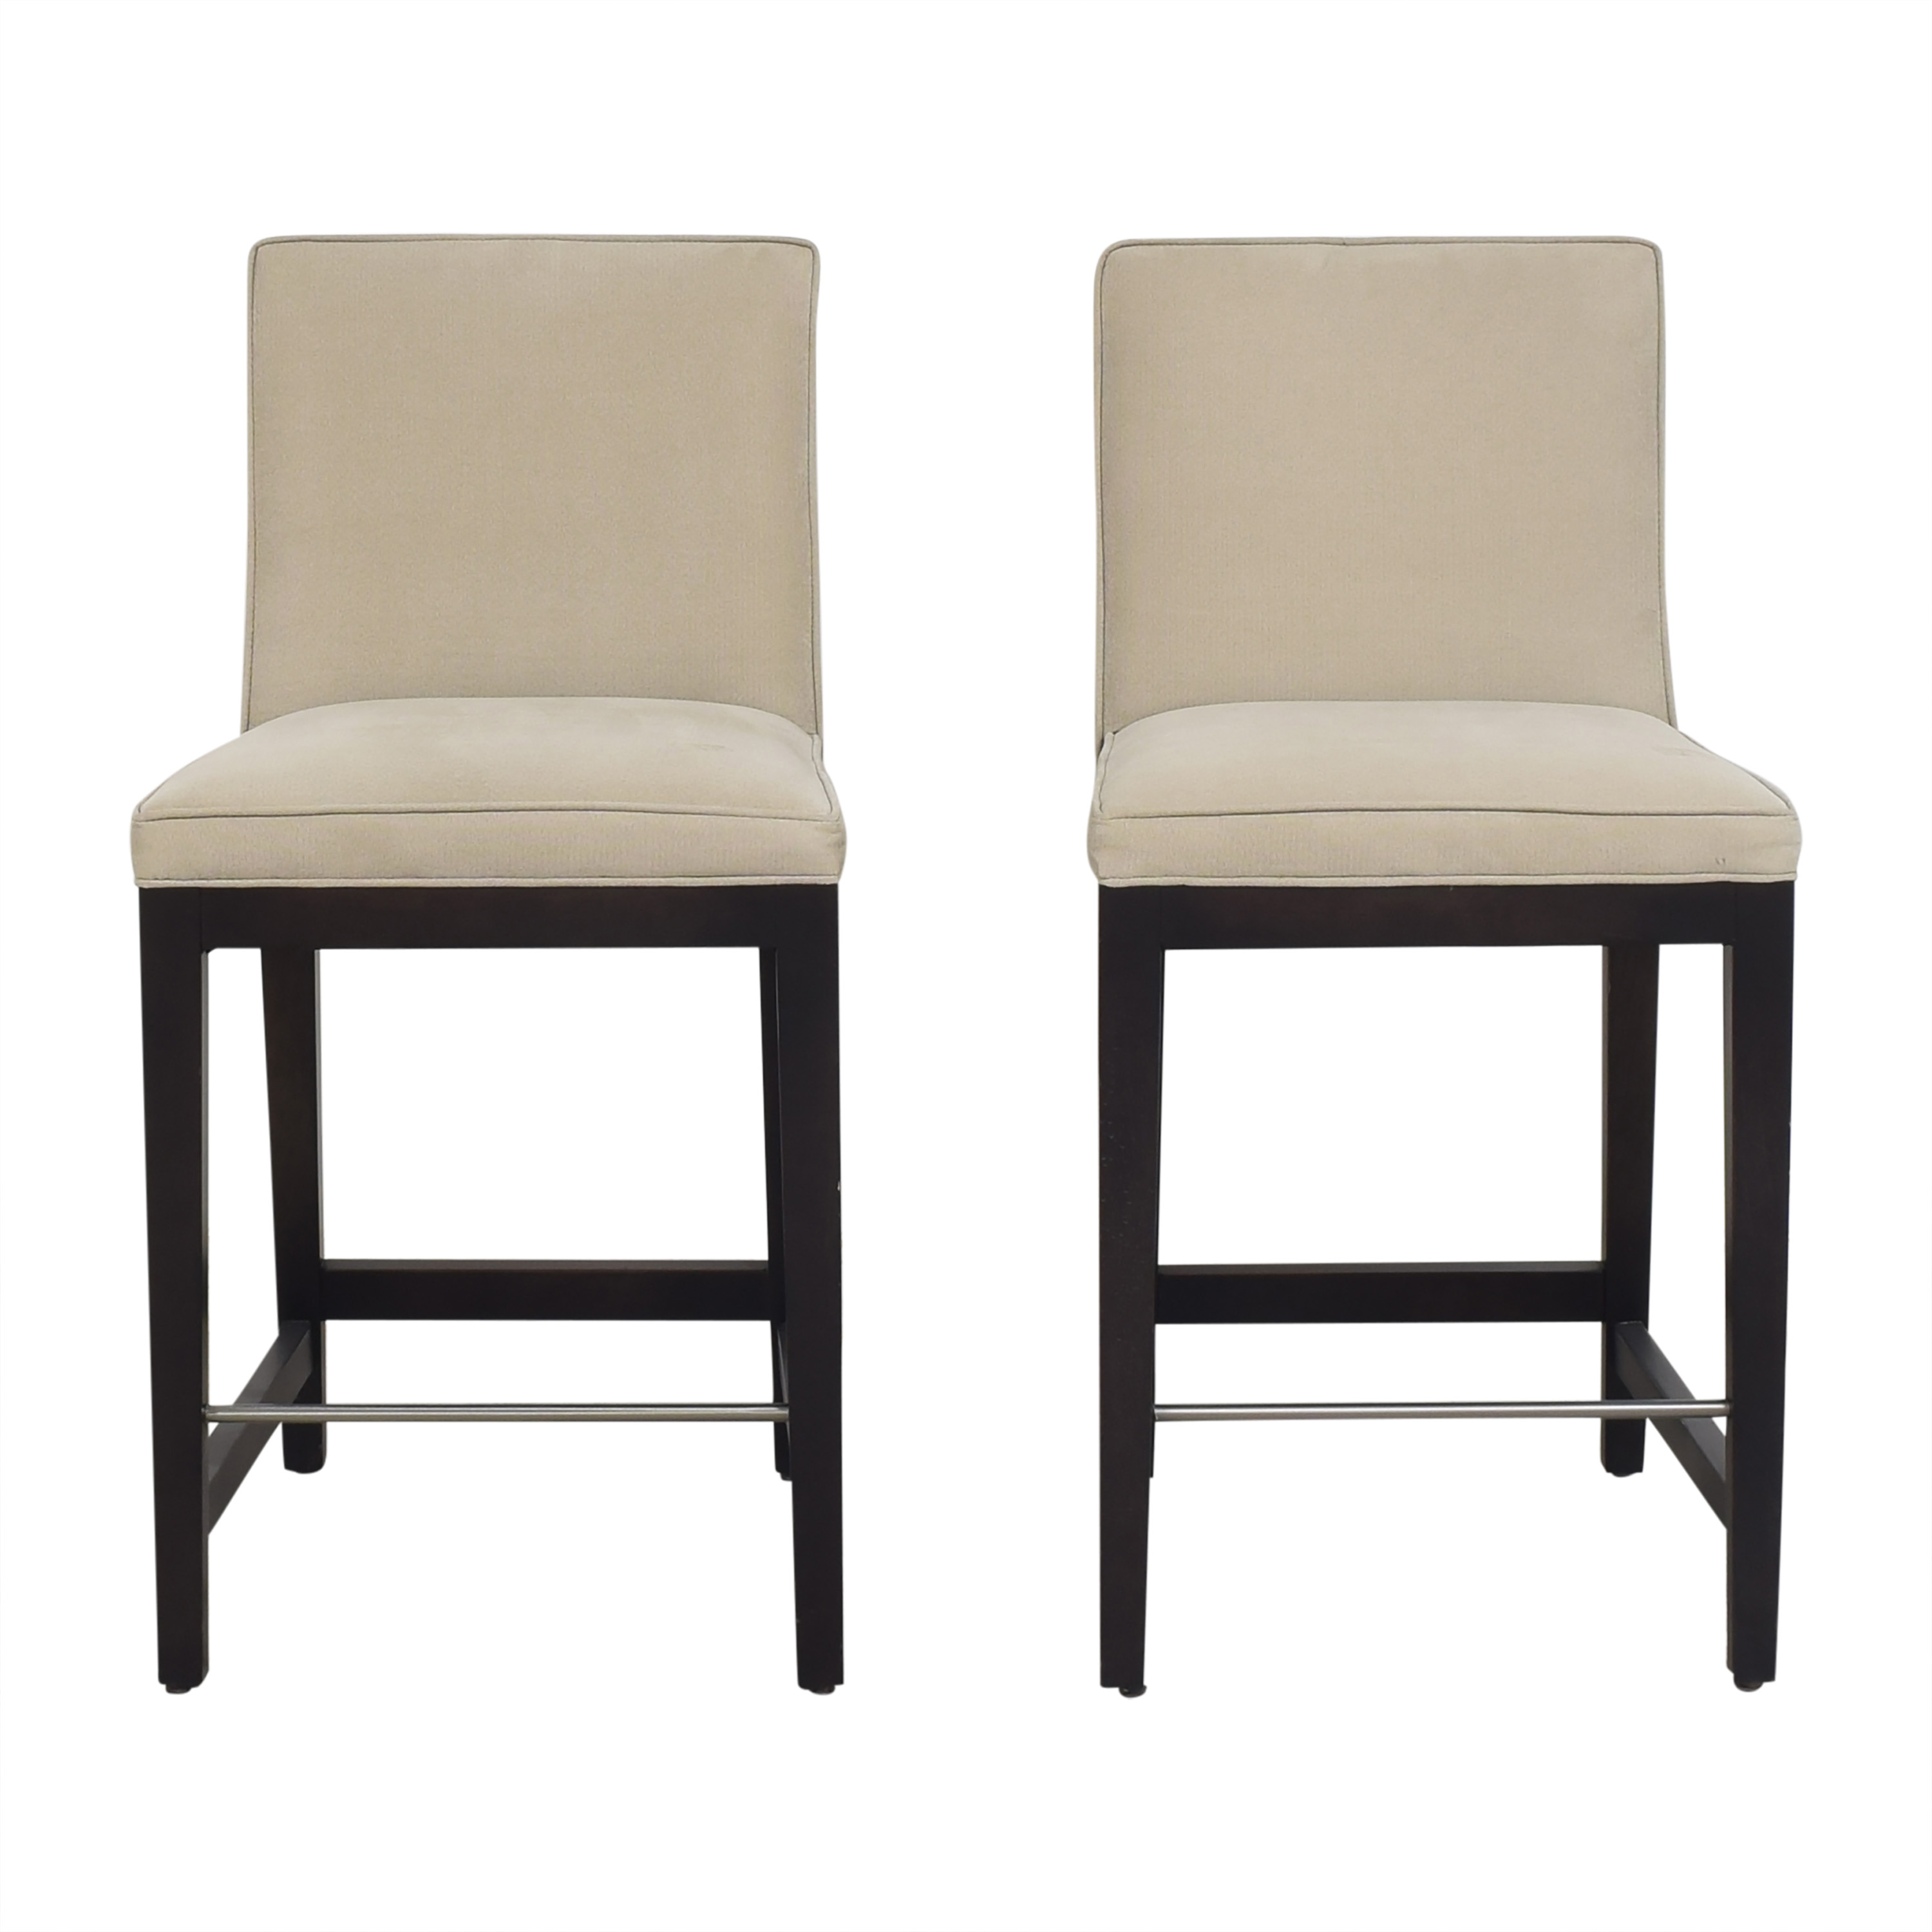 Room & Board Room & Board Parsons Counter Stools price